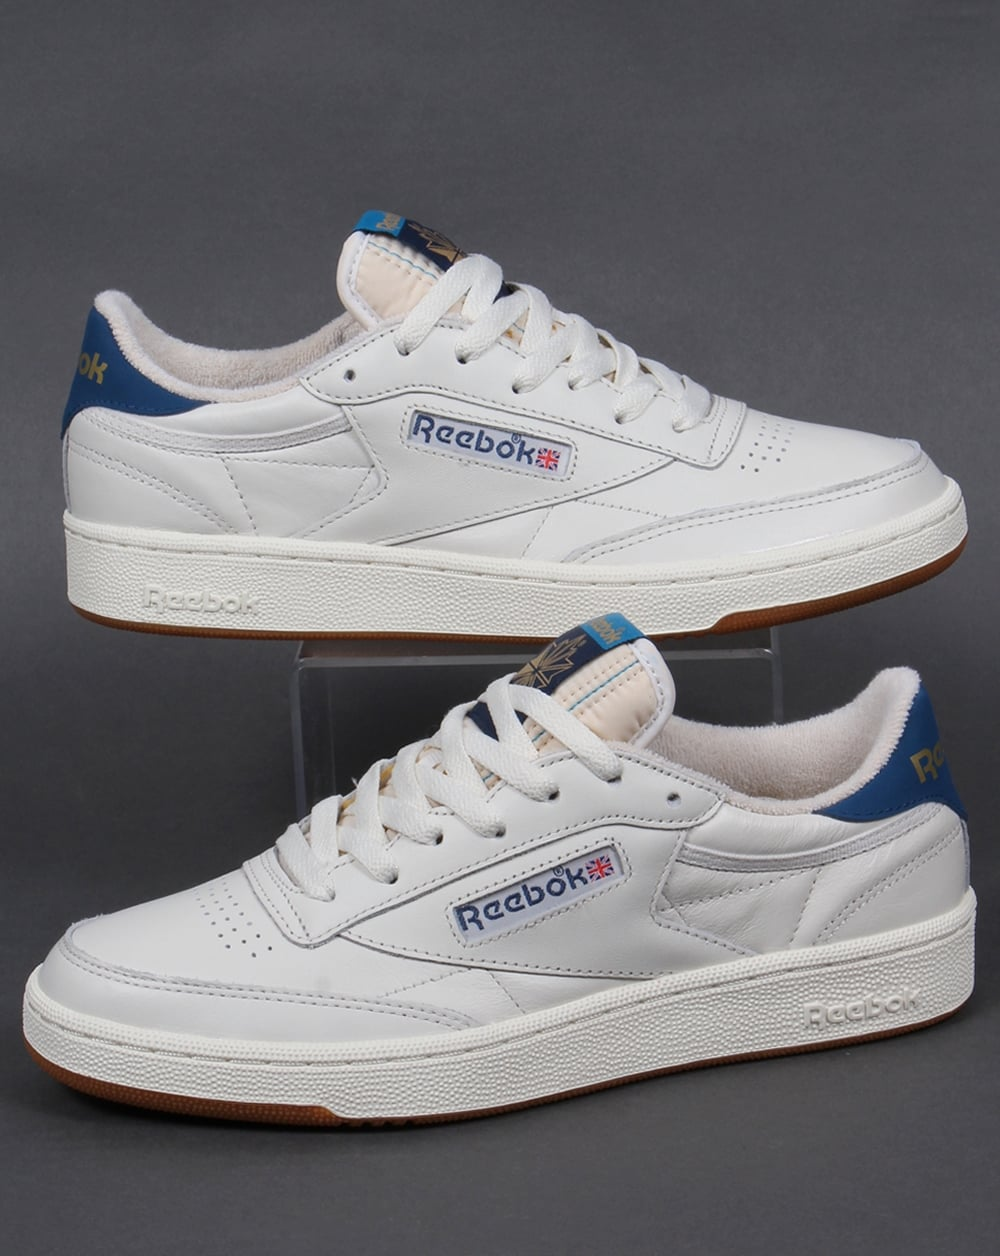 Reebok Mens White Tennis Shoes